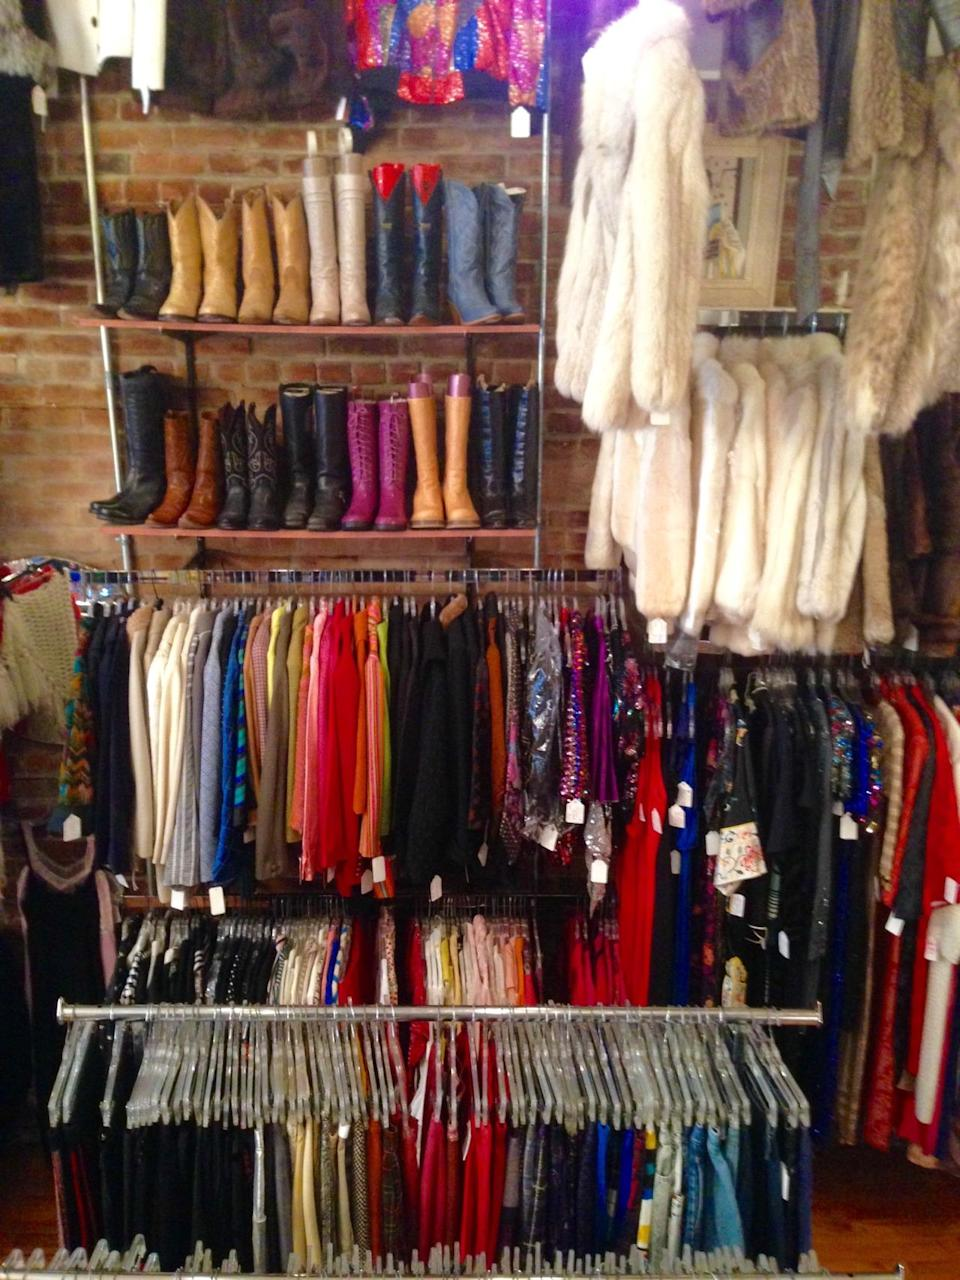 """<p>There are bigger and more luxurious vintage stores in Portland, but this <a href=""""https://www.facebook.com/hattiesvintageusa/"""" rel=""""nofollow noopener"""" target=""""_blank"""" data-ylk=""""slk:East Burnside Street store"""" class=""""link rapid-noclick-resp"""">East Burnside Street store</a> stands alone for its reliable mix of women's and men's gear spanning at least 100 years. The namesake owner picks locally, netting an array that's heavy on dresses for ladies (minis from the '60s are trending right now) and, for guys, gabardine jackets and Pendleton shirts — big shock in this town. Prices are entirely reasonable, with the sweet spot landing between $20 and $75. For those not heading to the PNW anytime soon, Hattie's has an Etsy site. </p><p><i><a href=""""https://www.facebook.com/hattiesvintageusa/"""" rel=""""nofollow noopener"""" target=""""_blank"""" data-ylk=""""slk:Hattie's Vintage Clothing,"""" class=""""link rapid-noclick-resp"""">Hattie's Vintage Clothing,</a> 729 E. Burnside St. #101, Portland, OR 97214. (503) 238-1938</i></p>"""